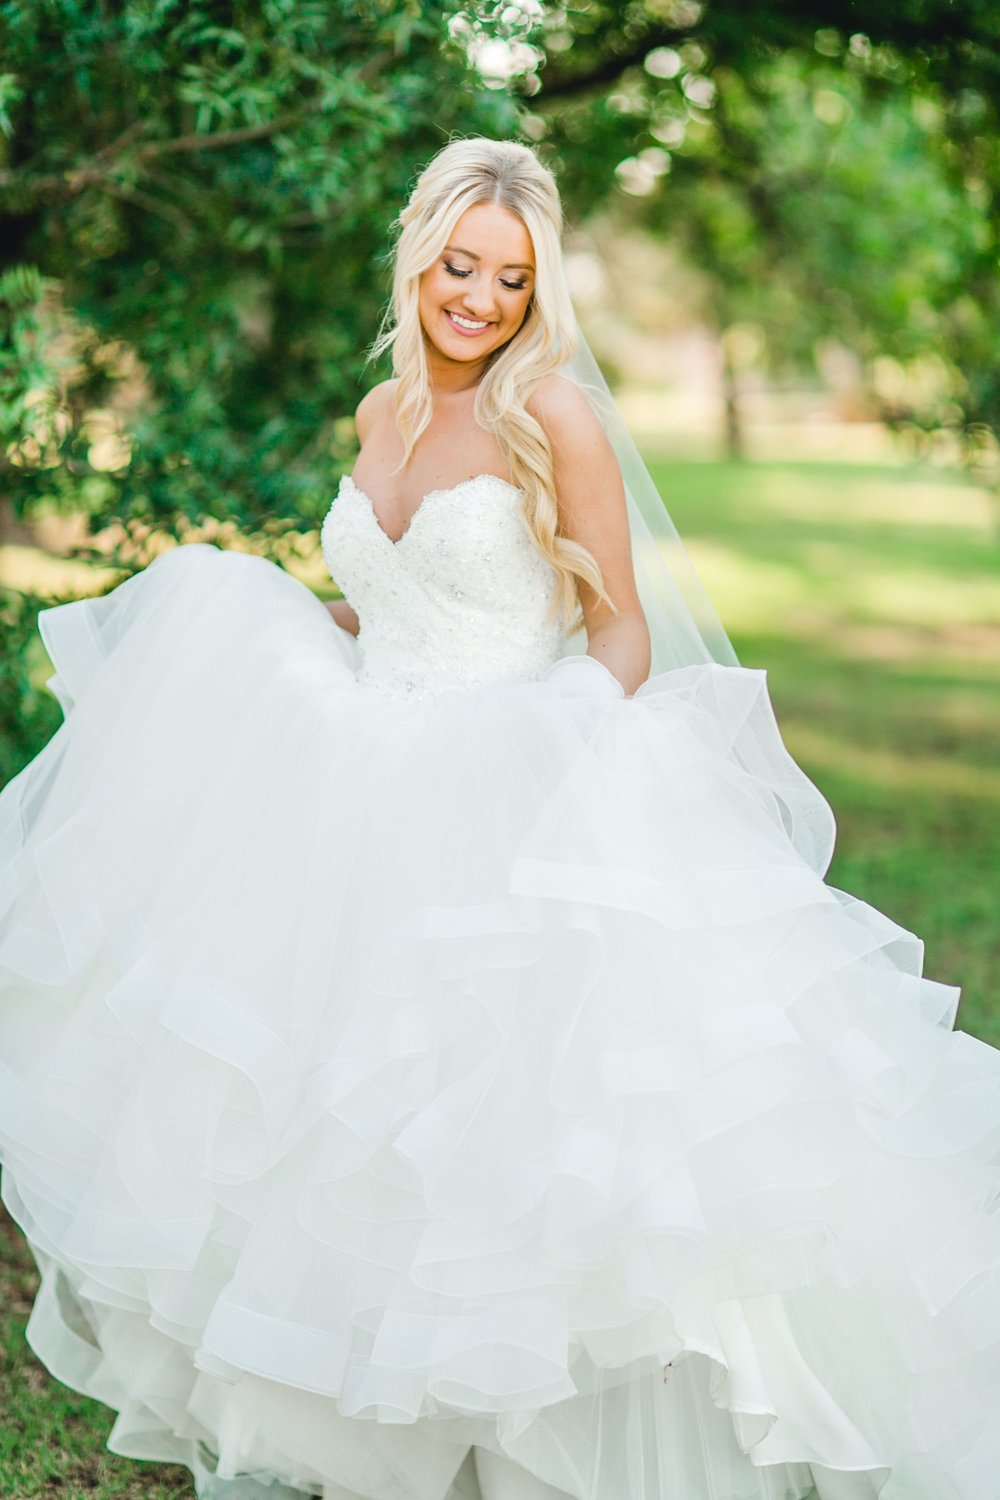 MADI_WRIGHT_BRIDALS_ALLEEJ_LUBBOCK_PHOTOGRAPHER0026.jpg